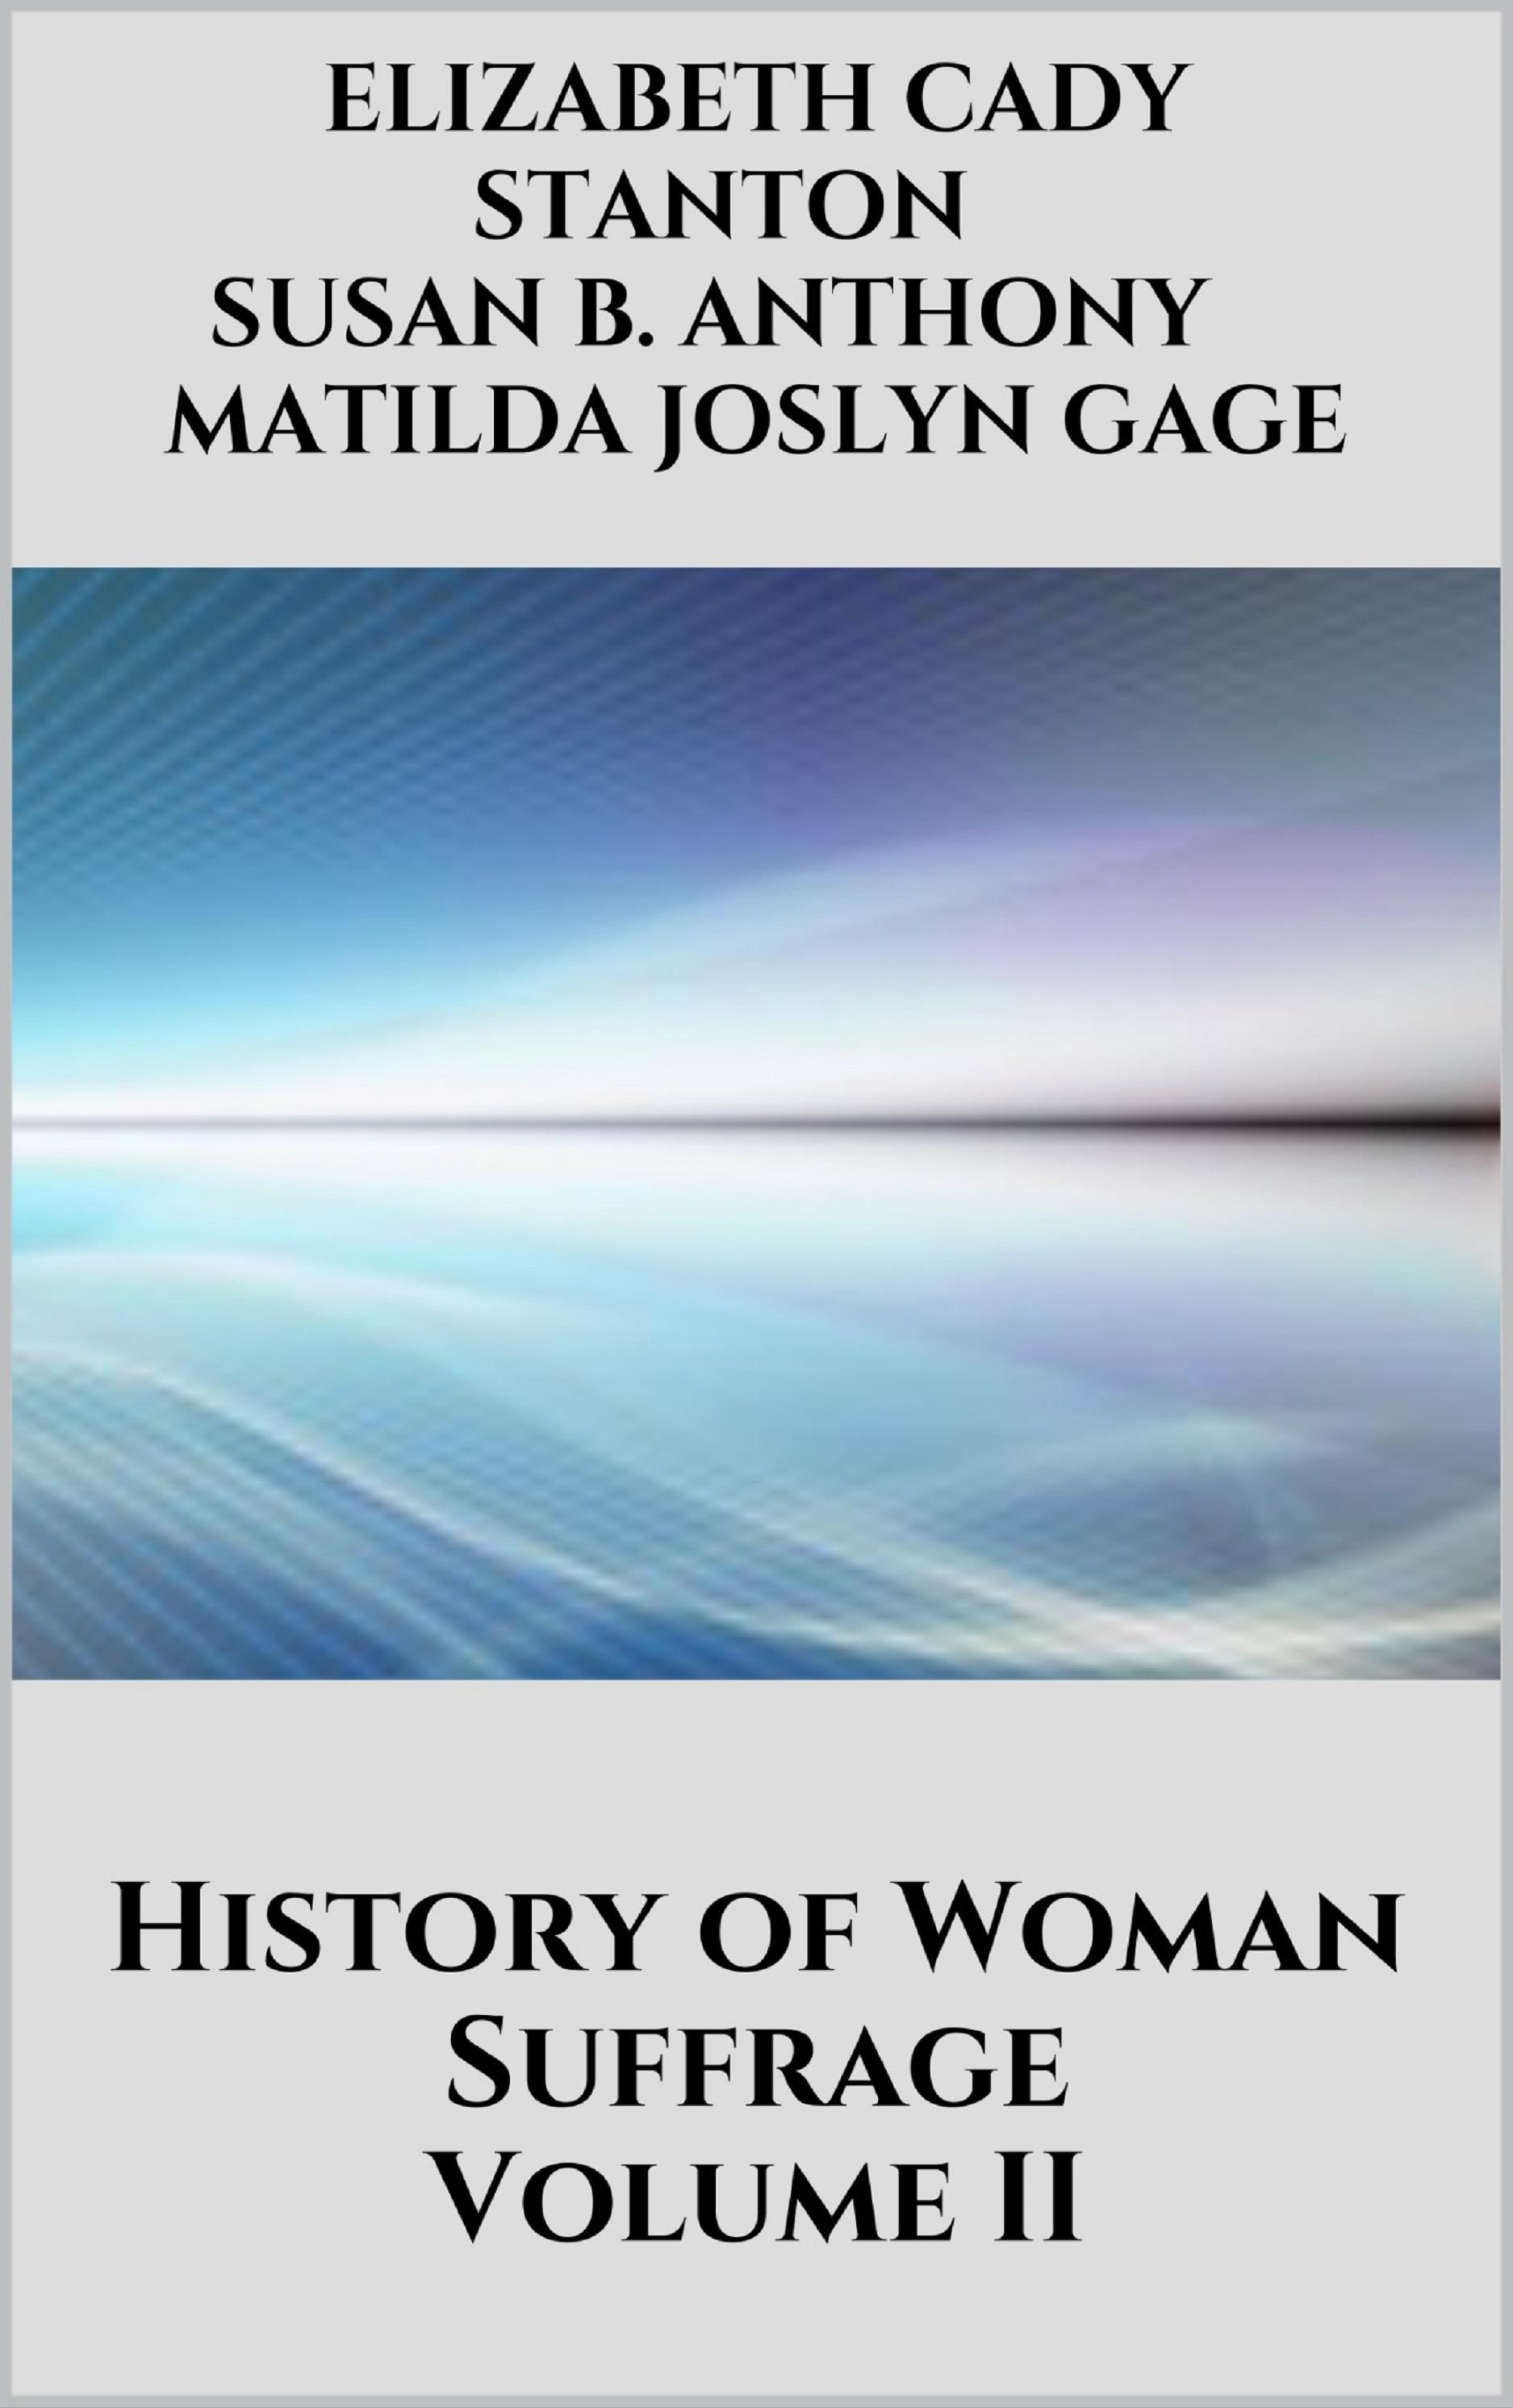 History of Woman Suffrage Vol 2